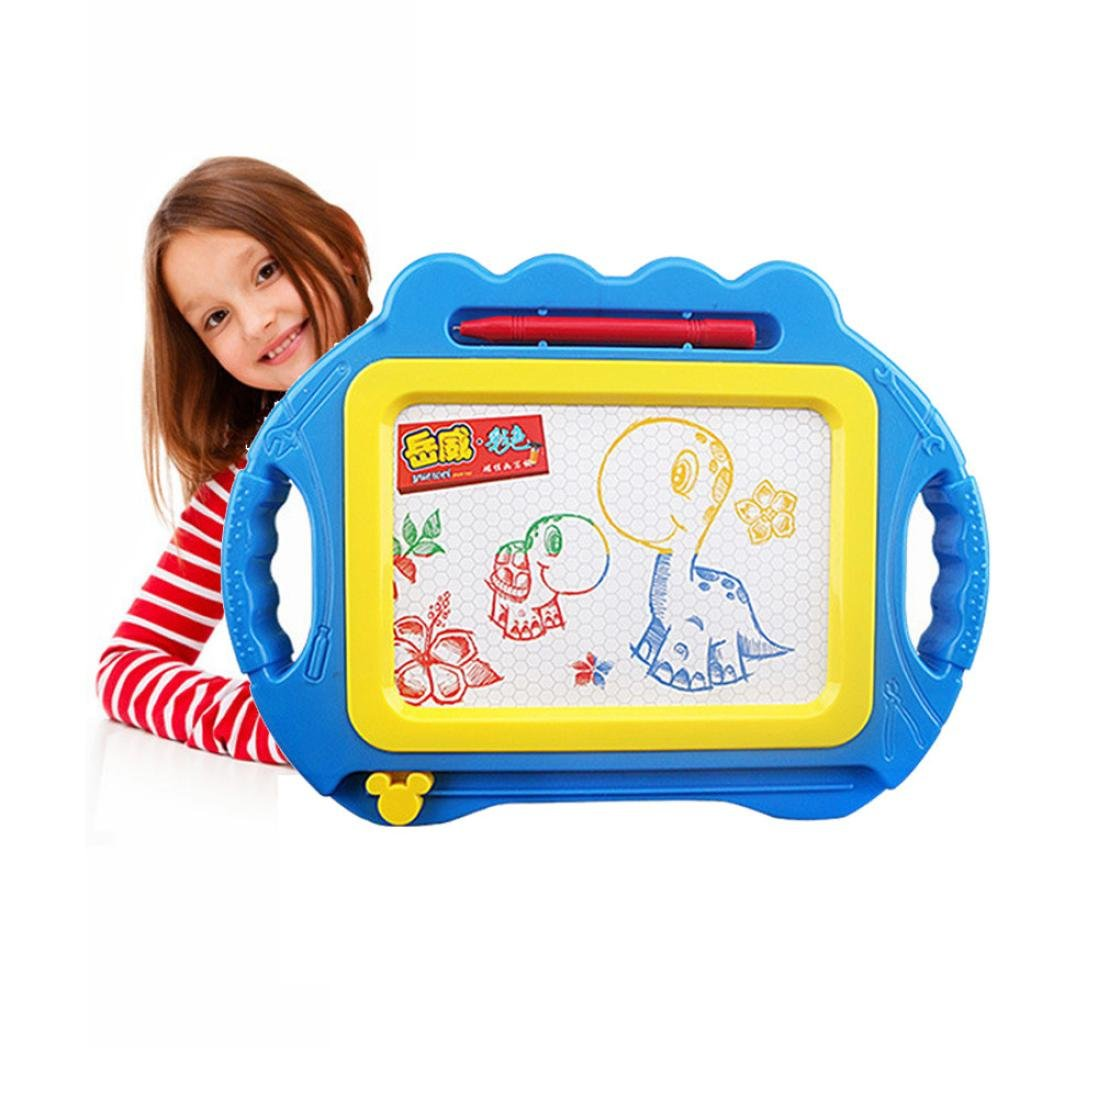 Pen Gift New Educational Kids Doodle Toy Erasable Magnetic Drawing Board Mess Free Drawing Fun Birthday Gifts for Children ages 18 months+ (blue)